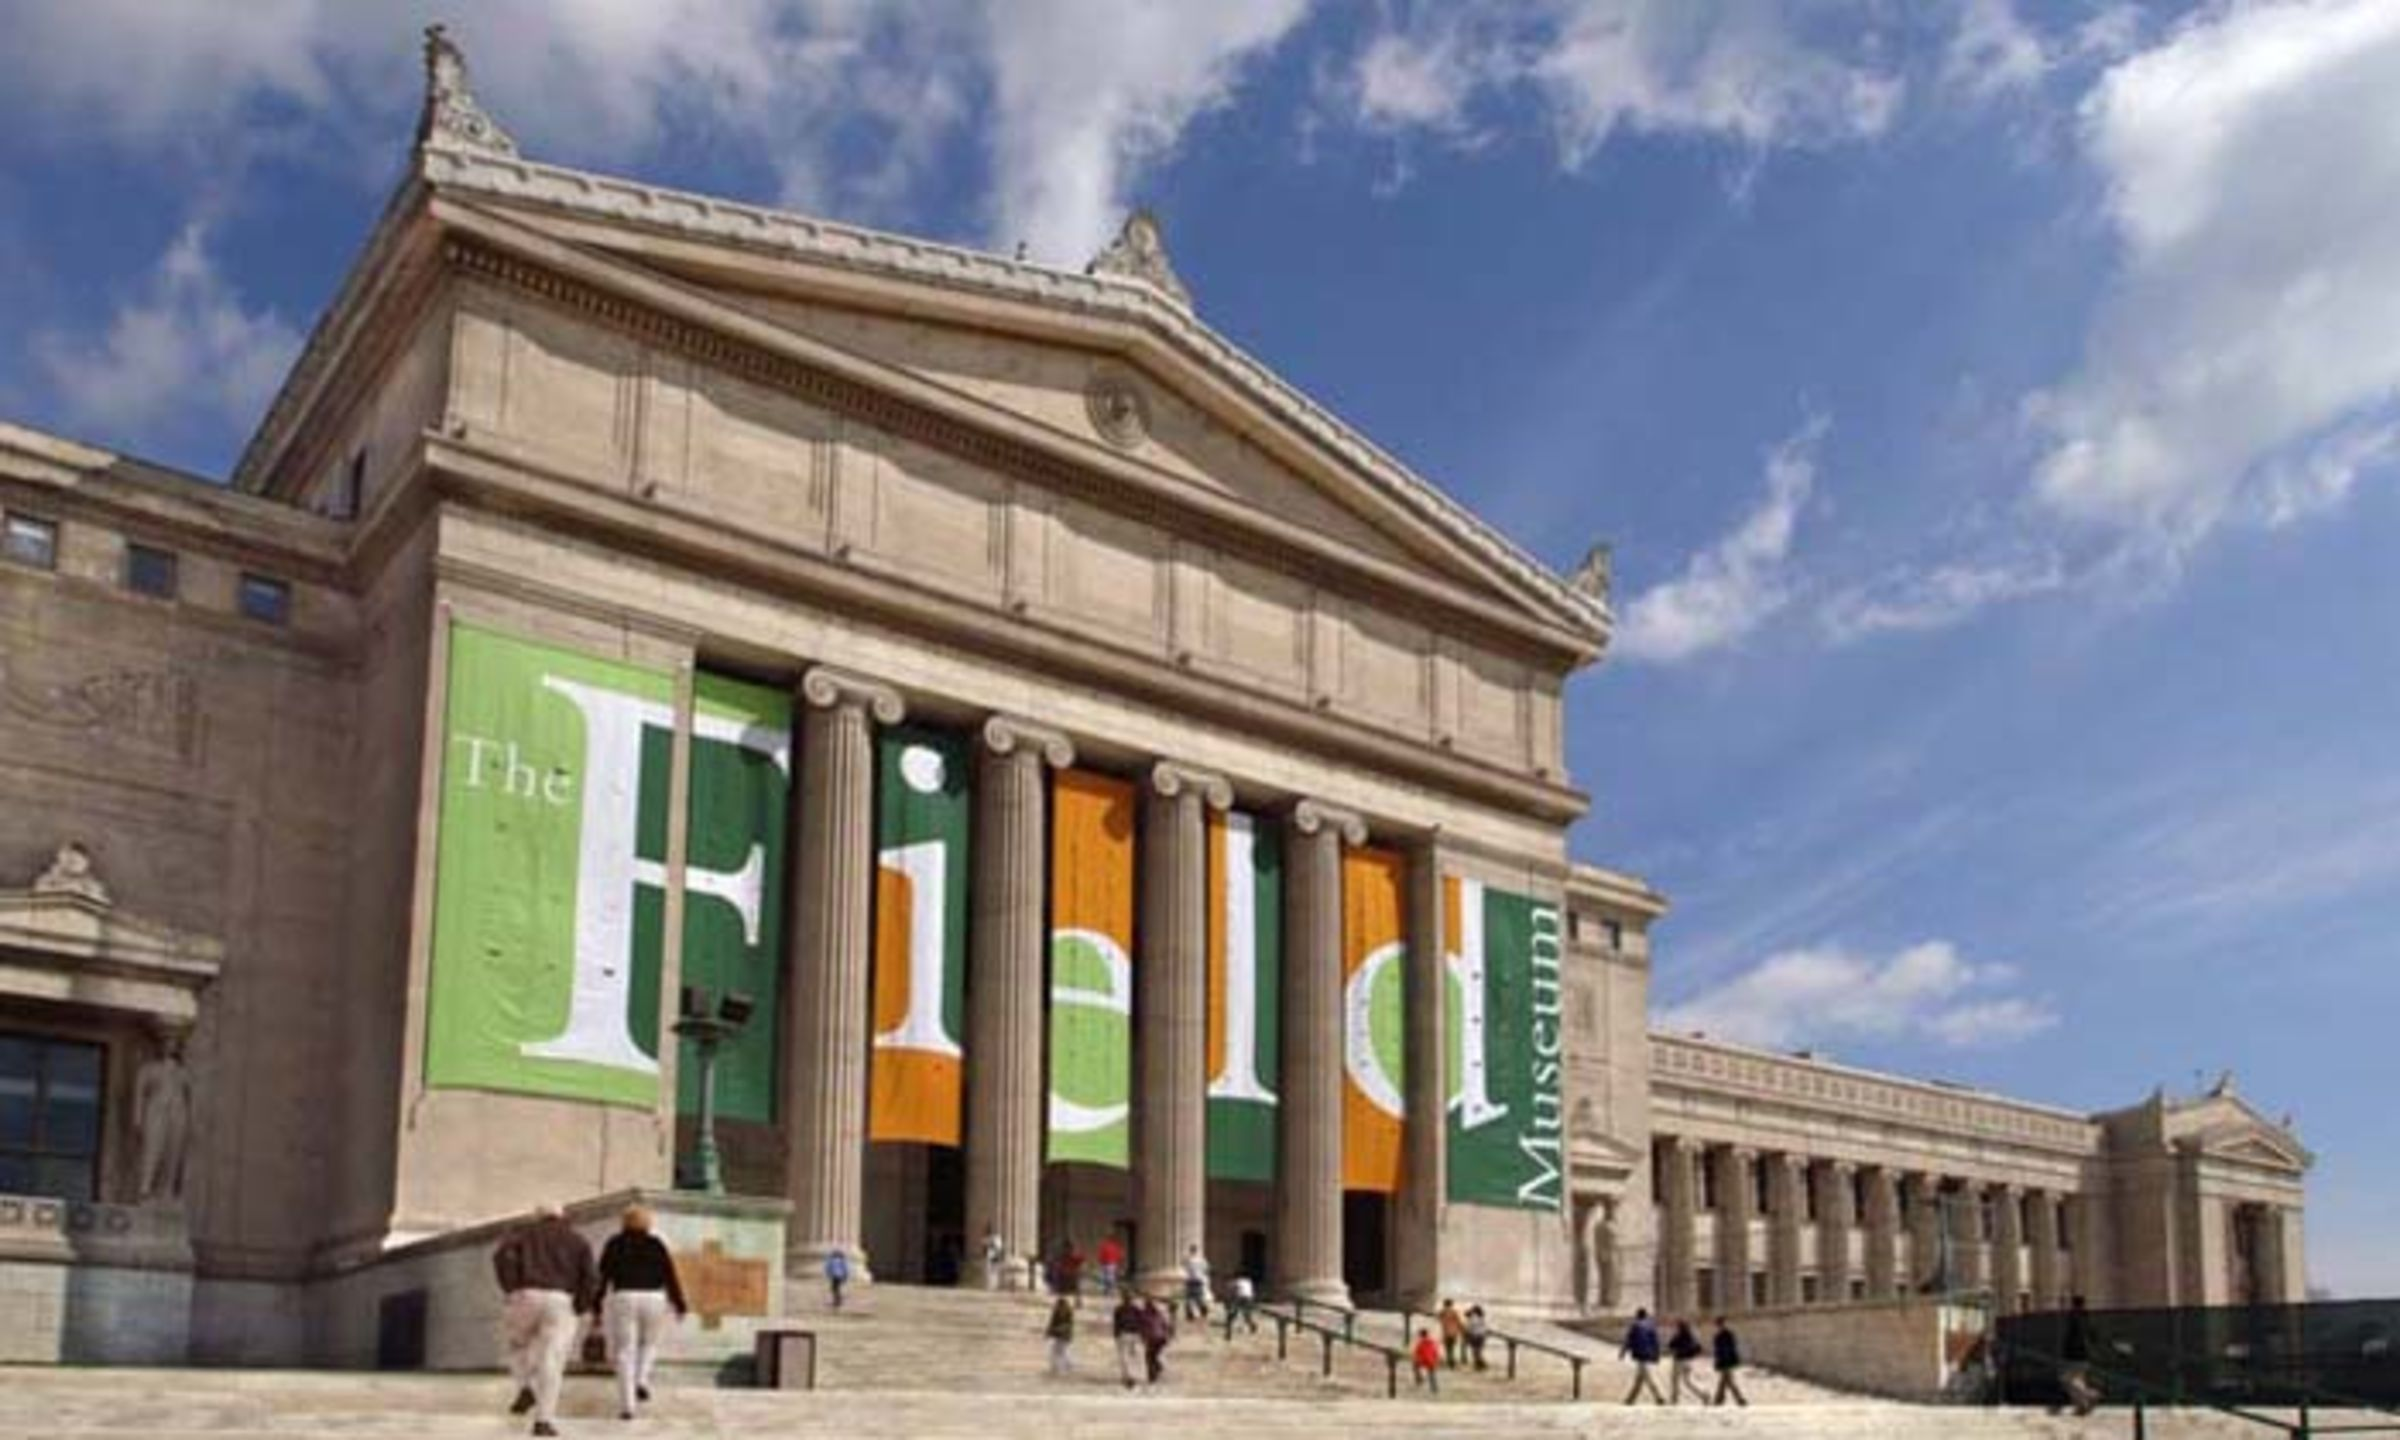 Plan Your Visit Chicago museums, Free museums, Field museum